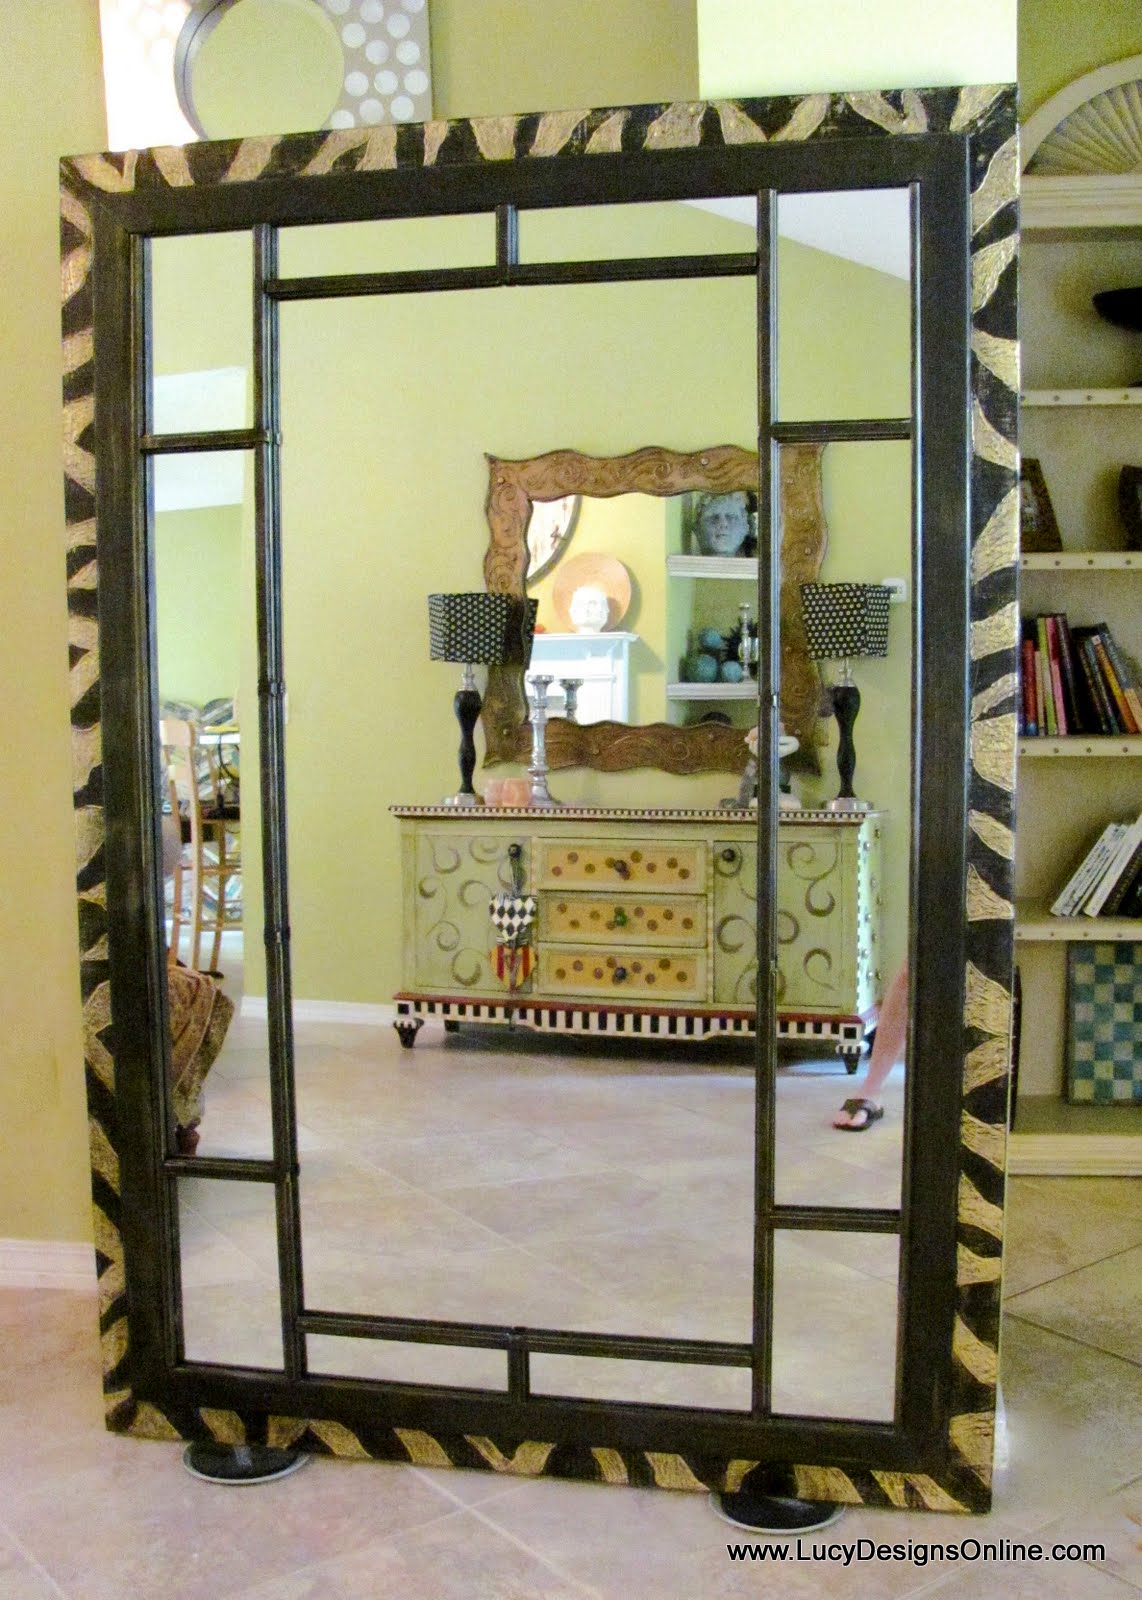 Dremel Carved Zebra Pattern on 6 Foot Wood Leaner Mirror Frame, DIY ...